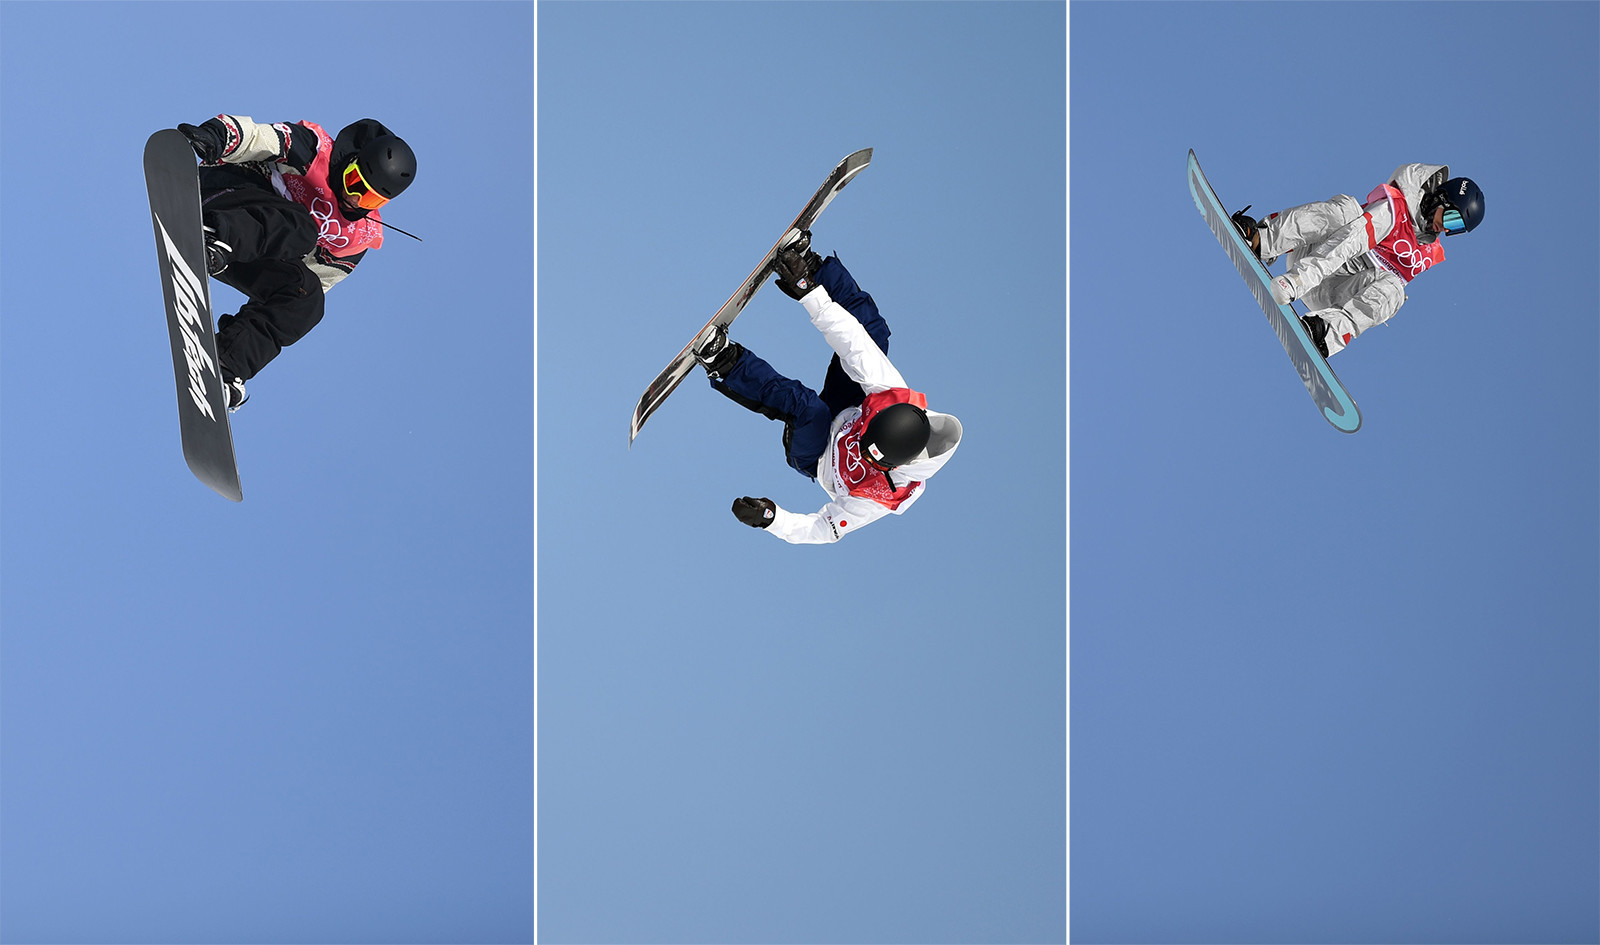 tyler nicholson of canada hiroaki kunitake of japan and ryan stassel in action during the big air snowboard competition at the 2018 winter olympics in